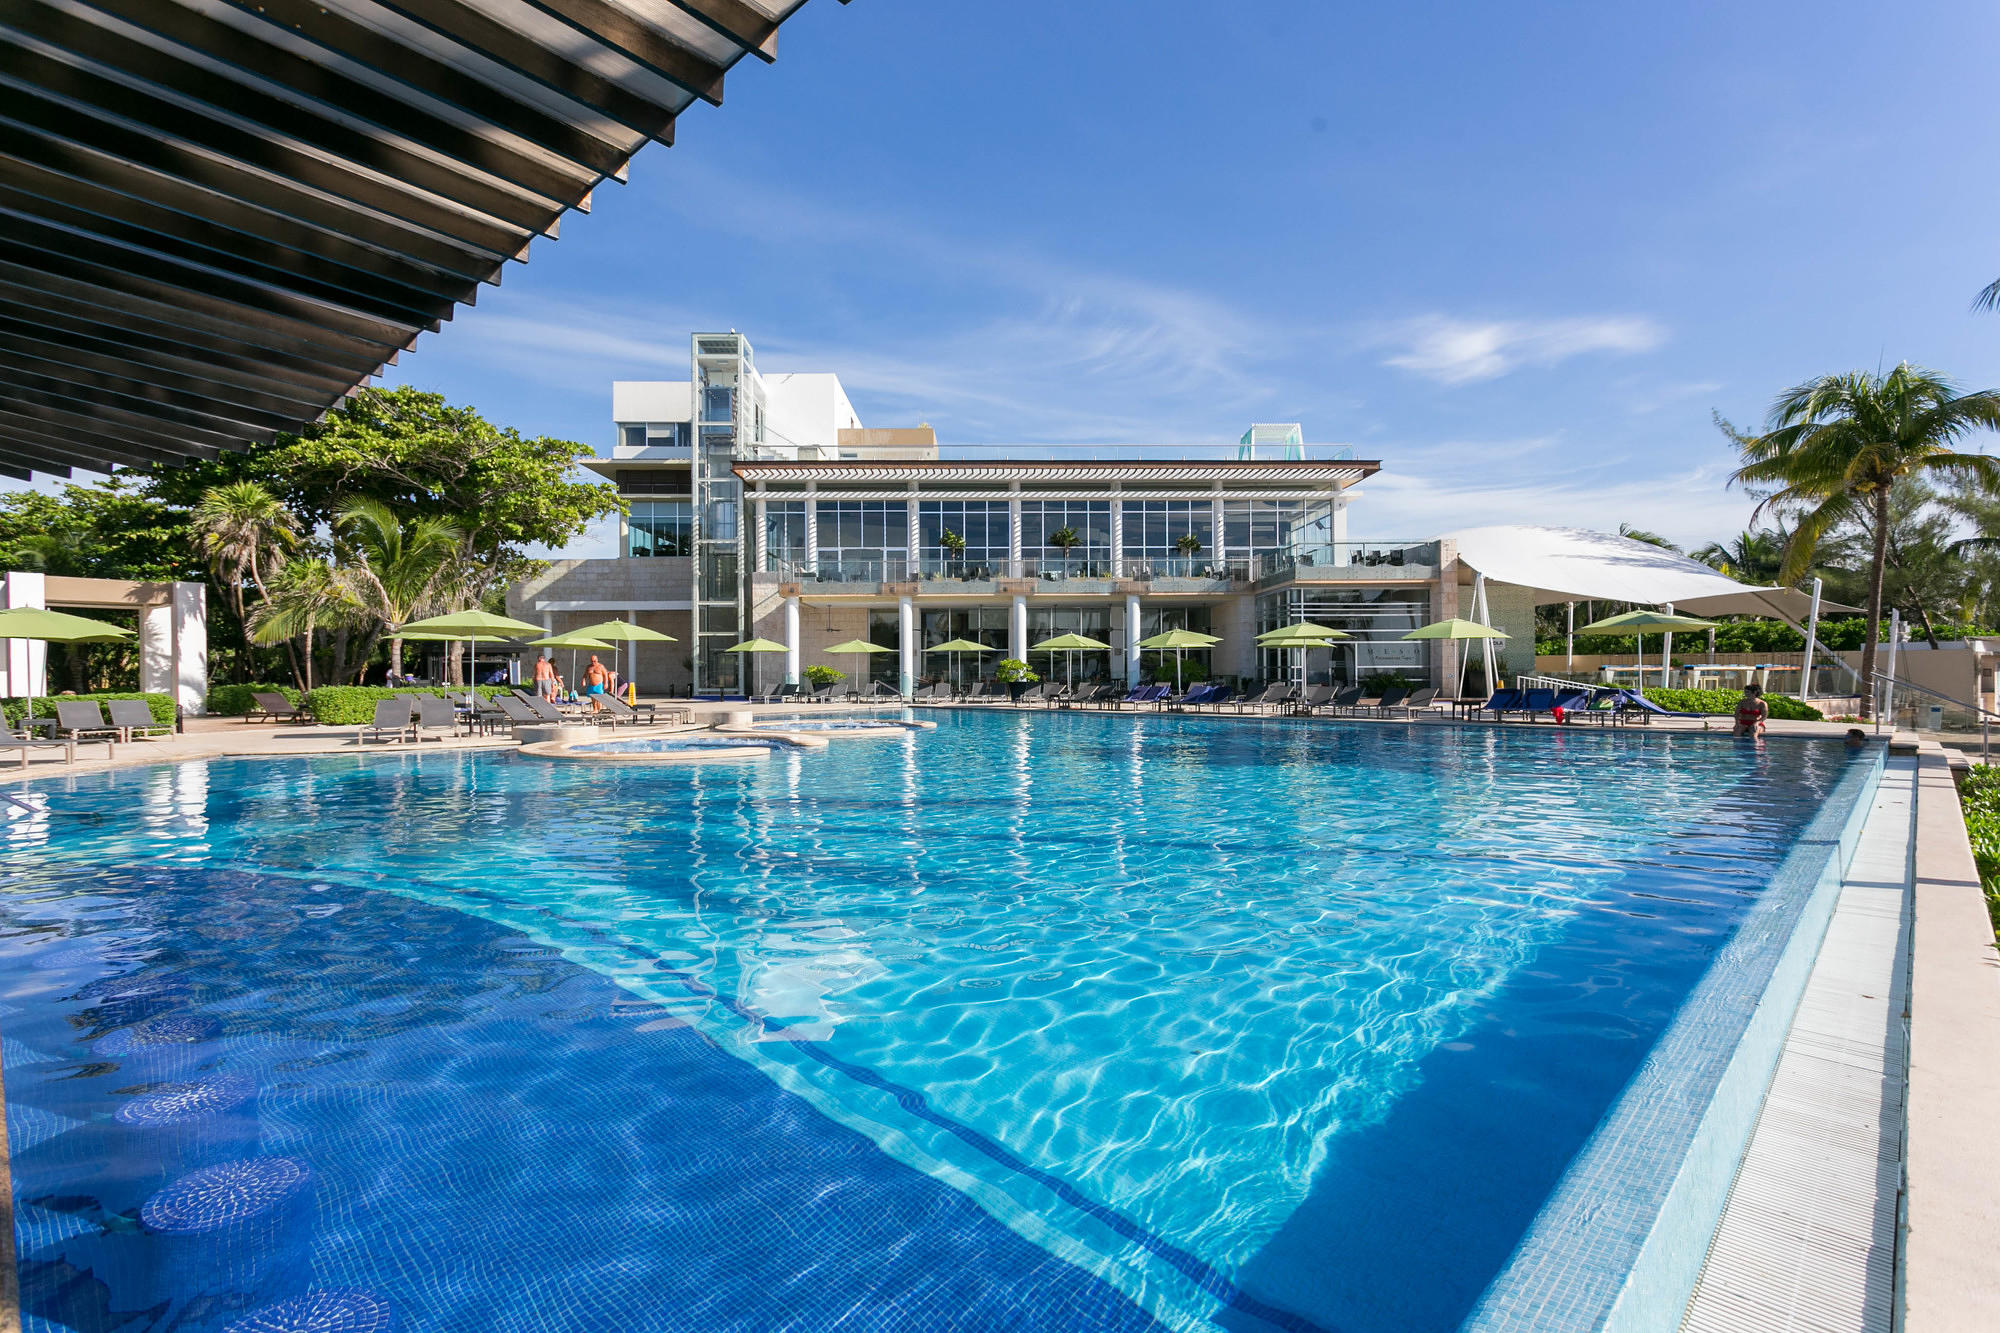 The pool and swim-up bar at The Fives Azul Beach Resort